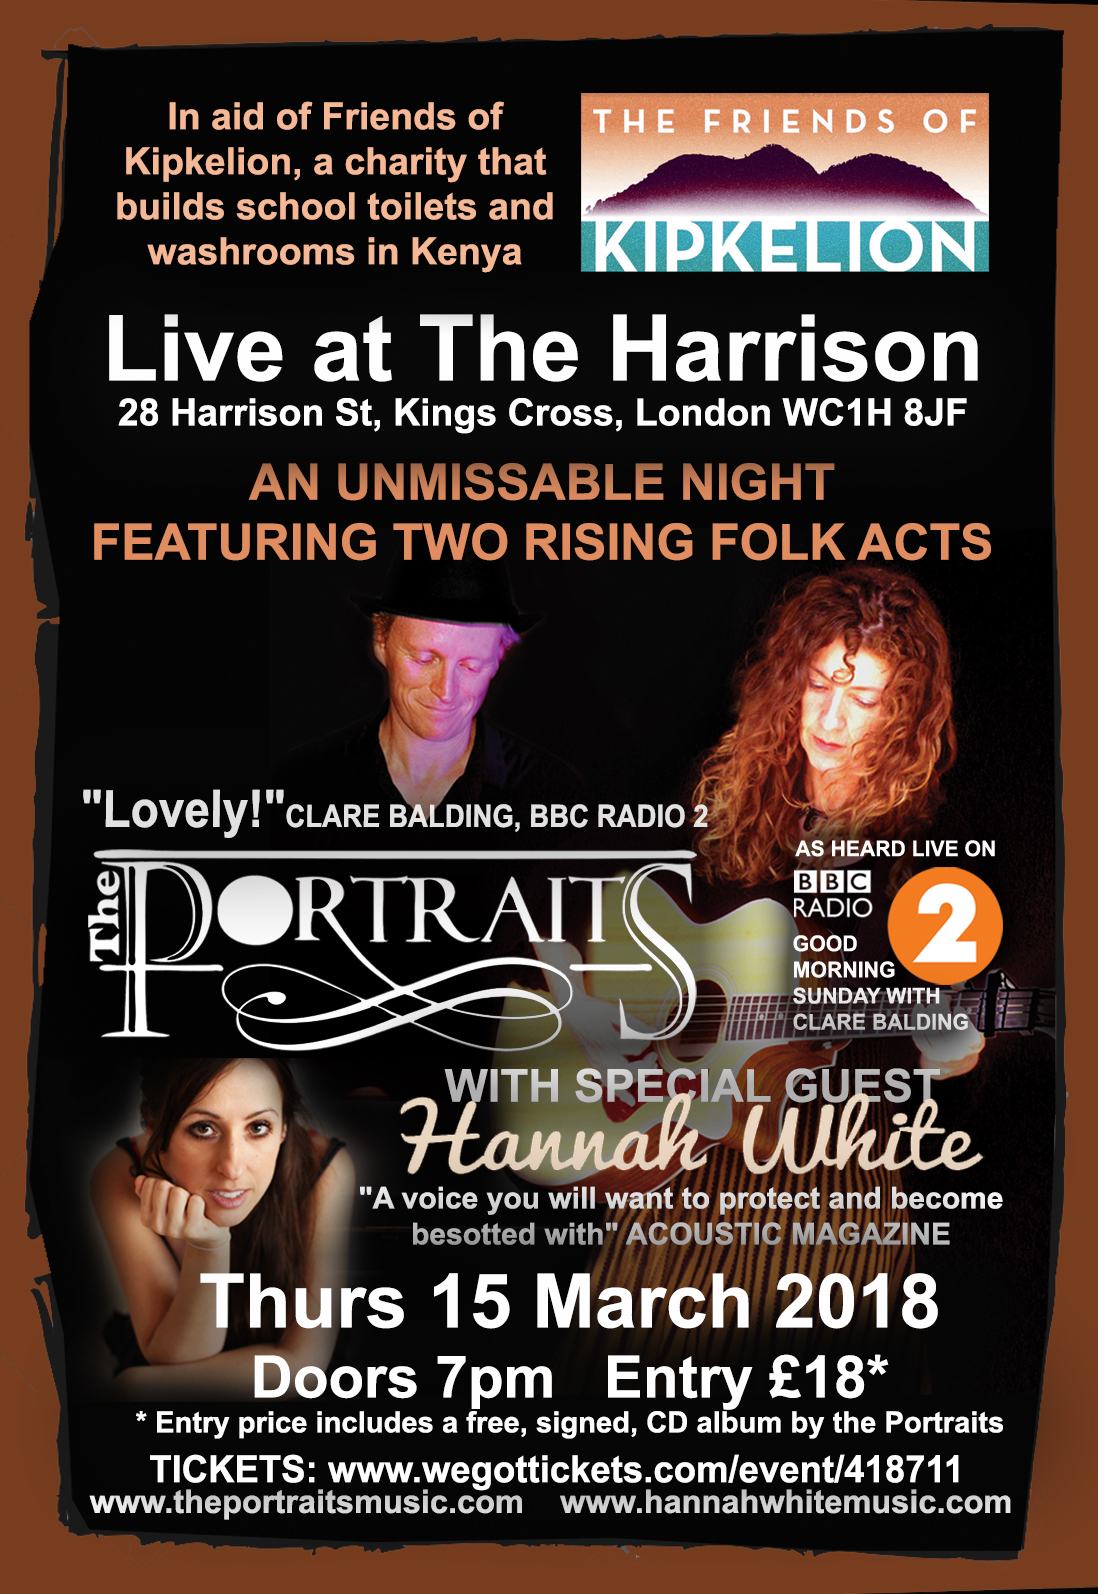 The Portraits Live at The Harrison